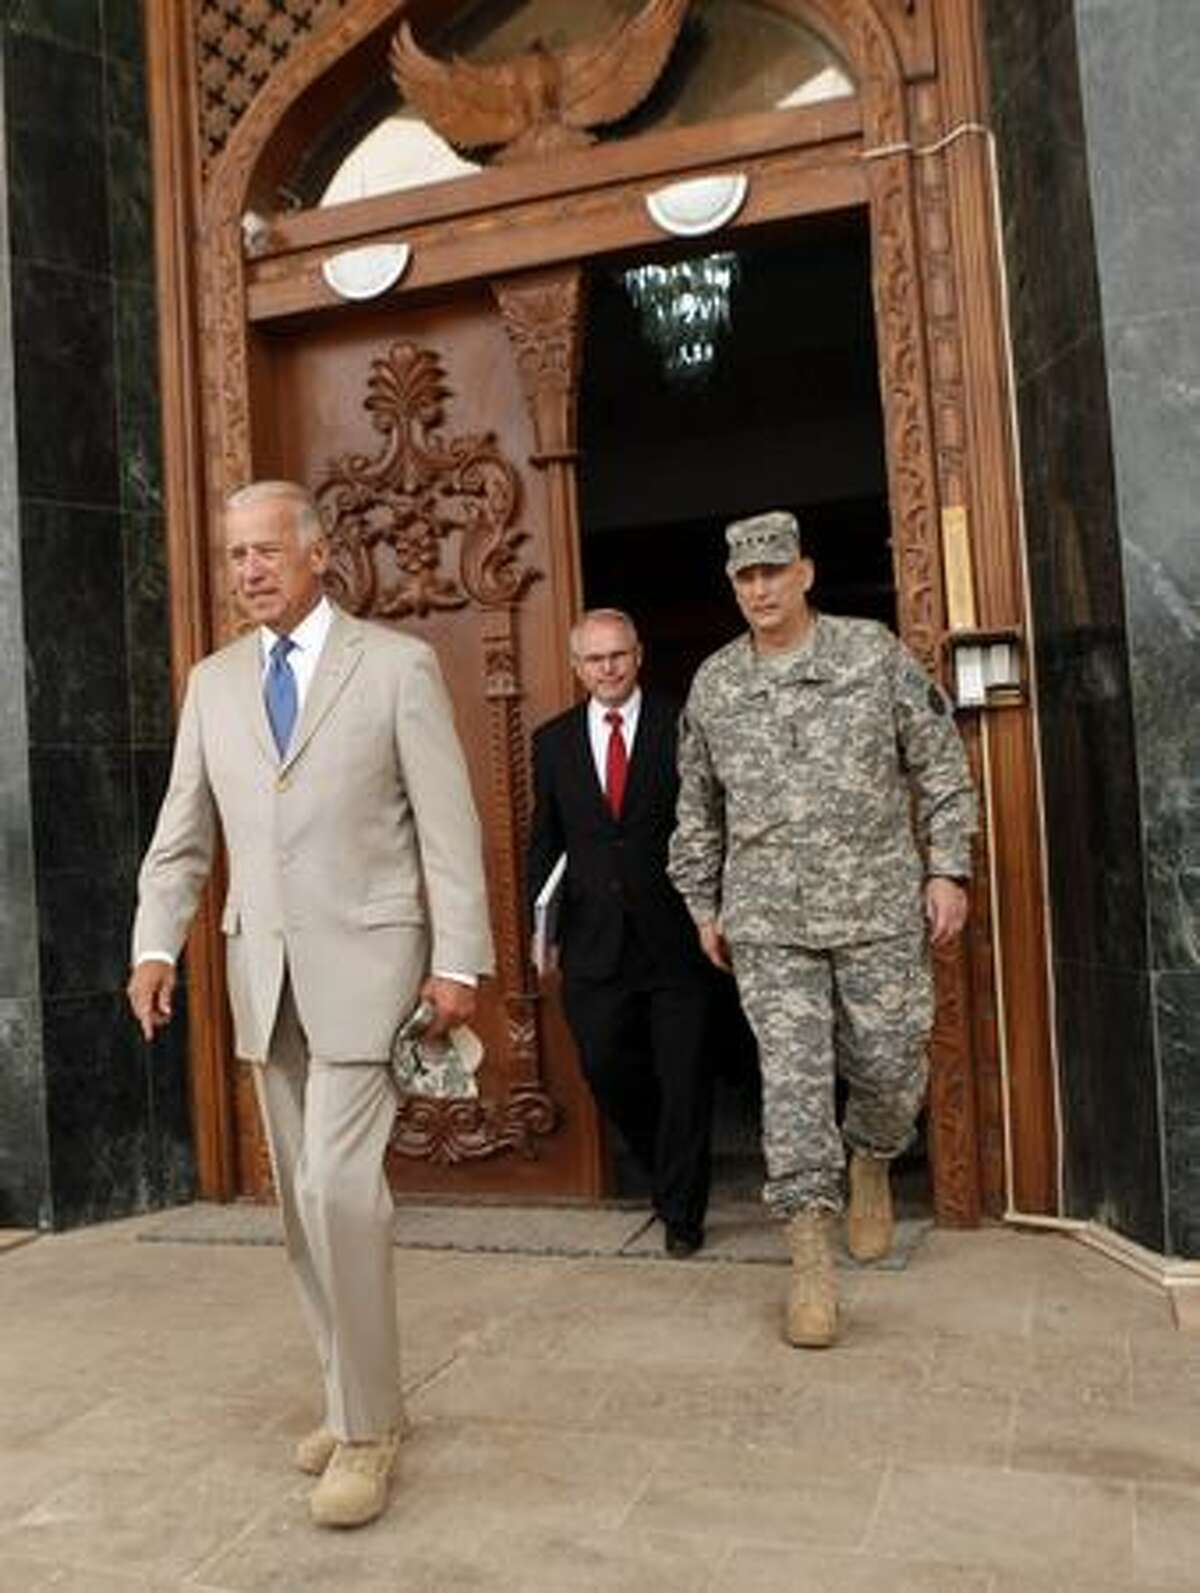 U.S. Vice President Joseph Biden, left, U.S. Ambassador Christopher Hill, center, and Gen. Ray Odierno emerge from a U.S. military base near Baghdad. This is Bidden's first trip to Iraq as vice president and comes days after U.S. forces pulled out from Iraq's cities.